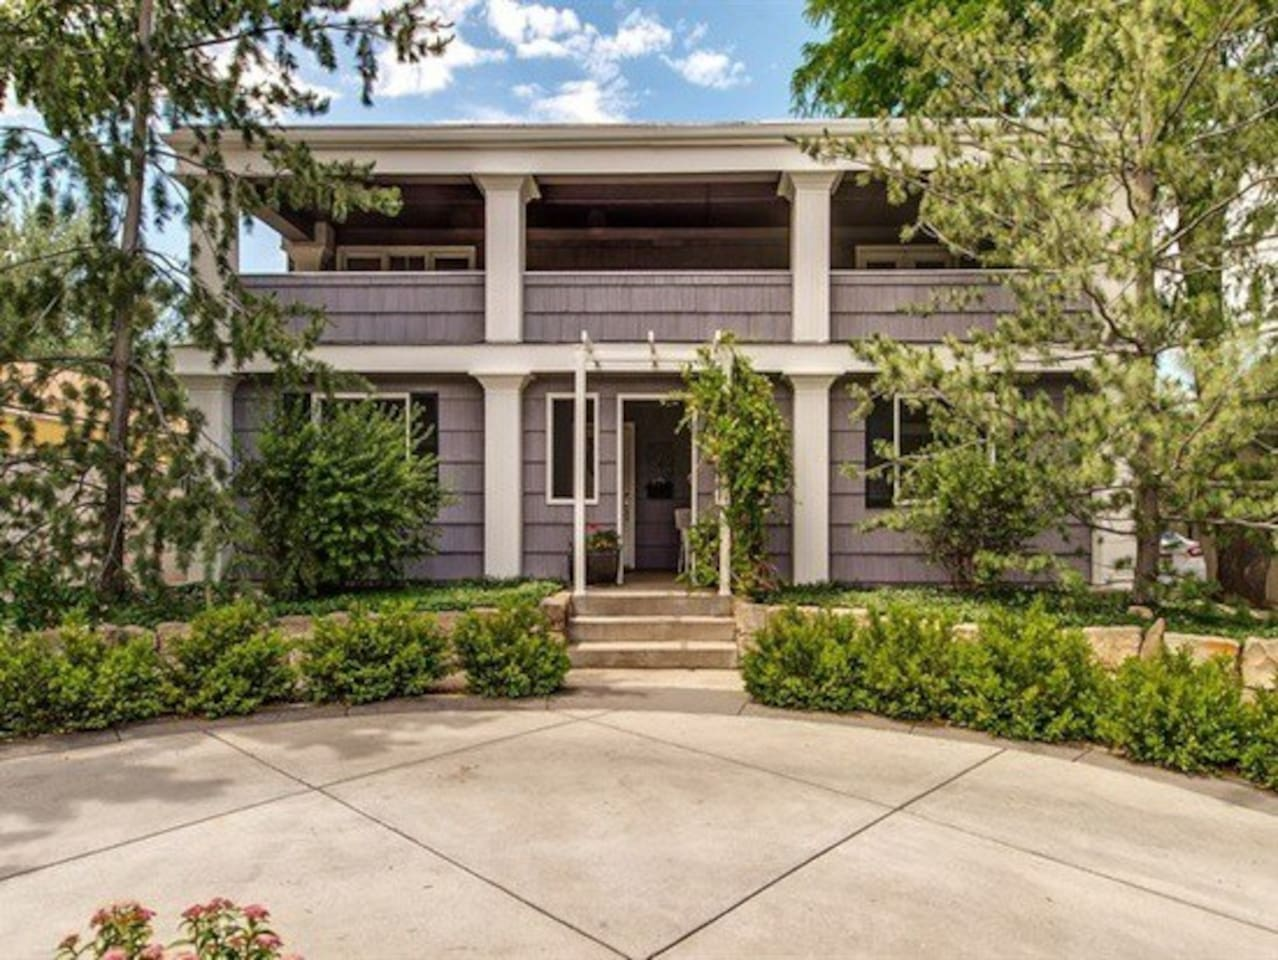 Classic Home on the Historic Boise Bench - 5 minutes to downtown, parks, river greenbelt, and more!